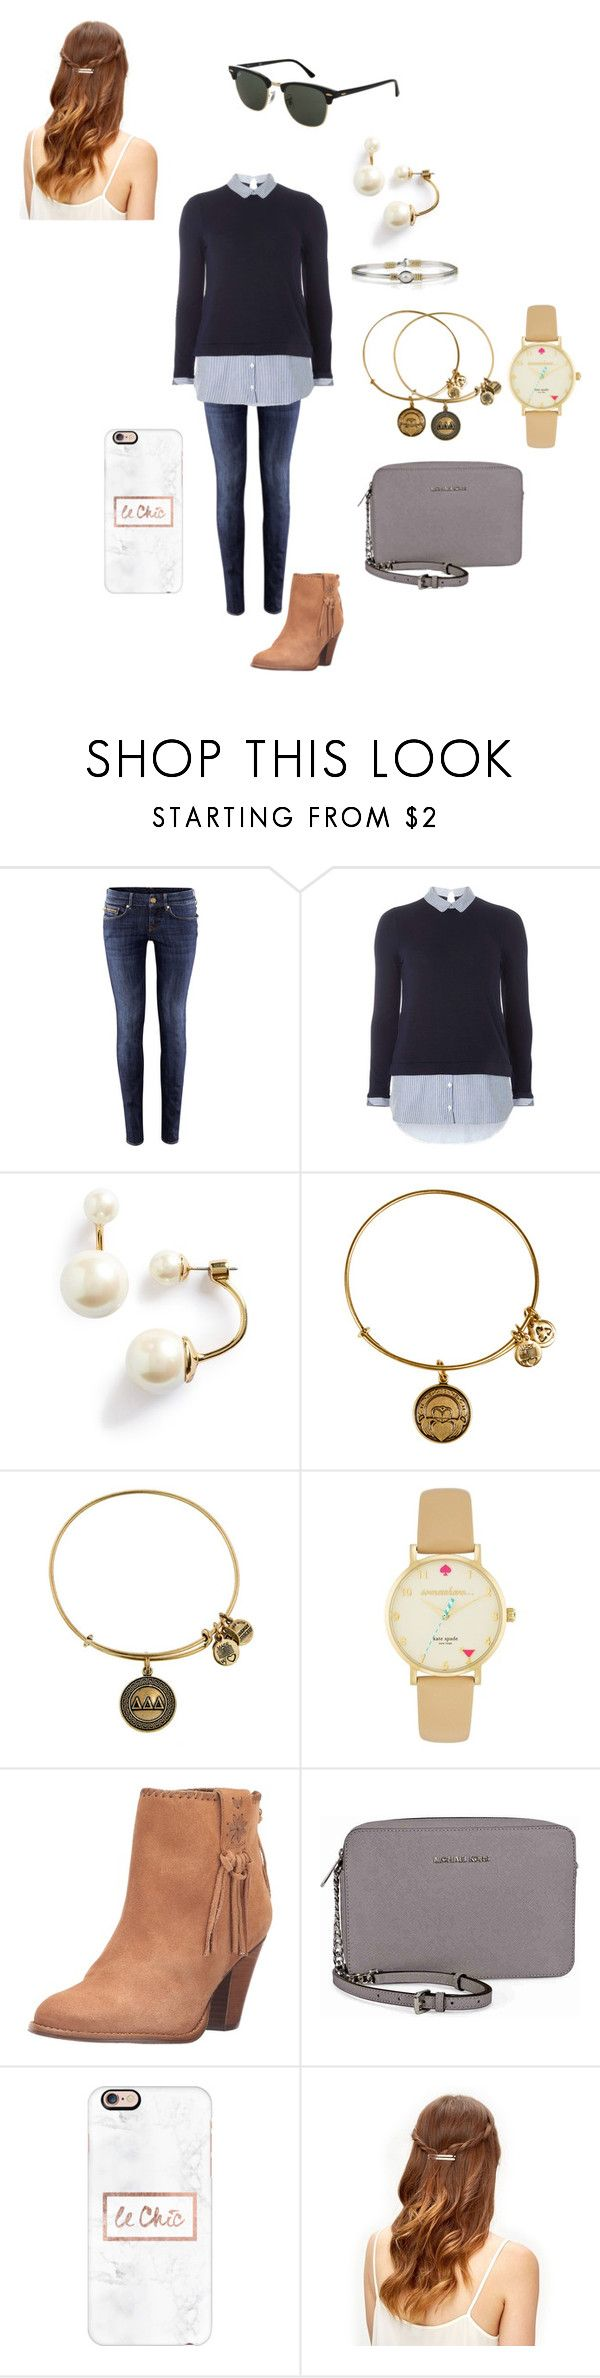 """""""Untitled #489"""" by rudy2414 ❤ liked on Polyvore featuring H&M, Dorothy Perkins, Kate Spade, Alex and Ani, Jack Rogers, Michael Kors, Casetify and Topshop"""